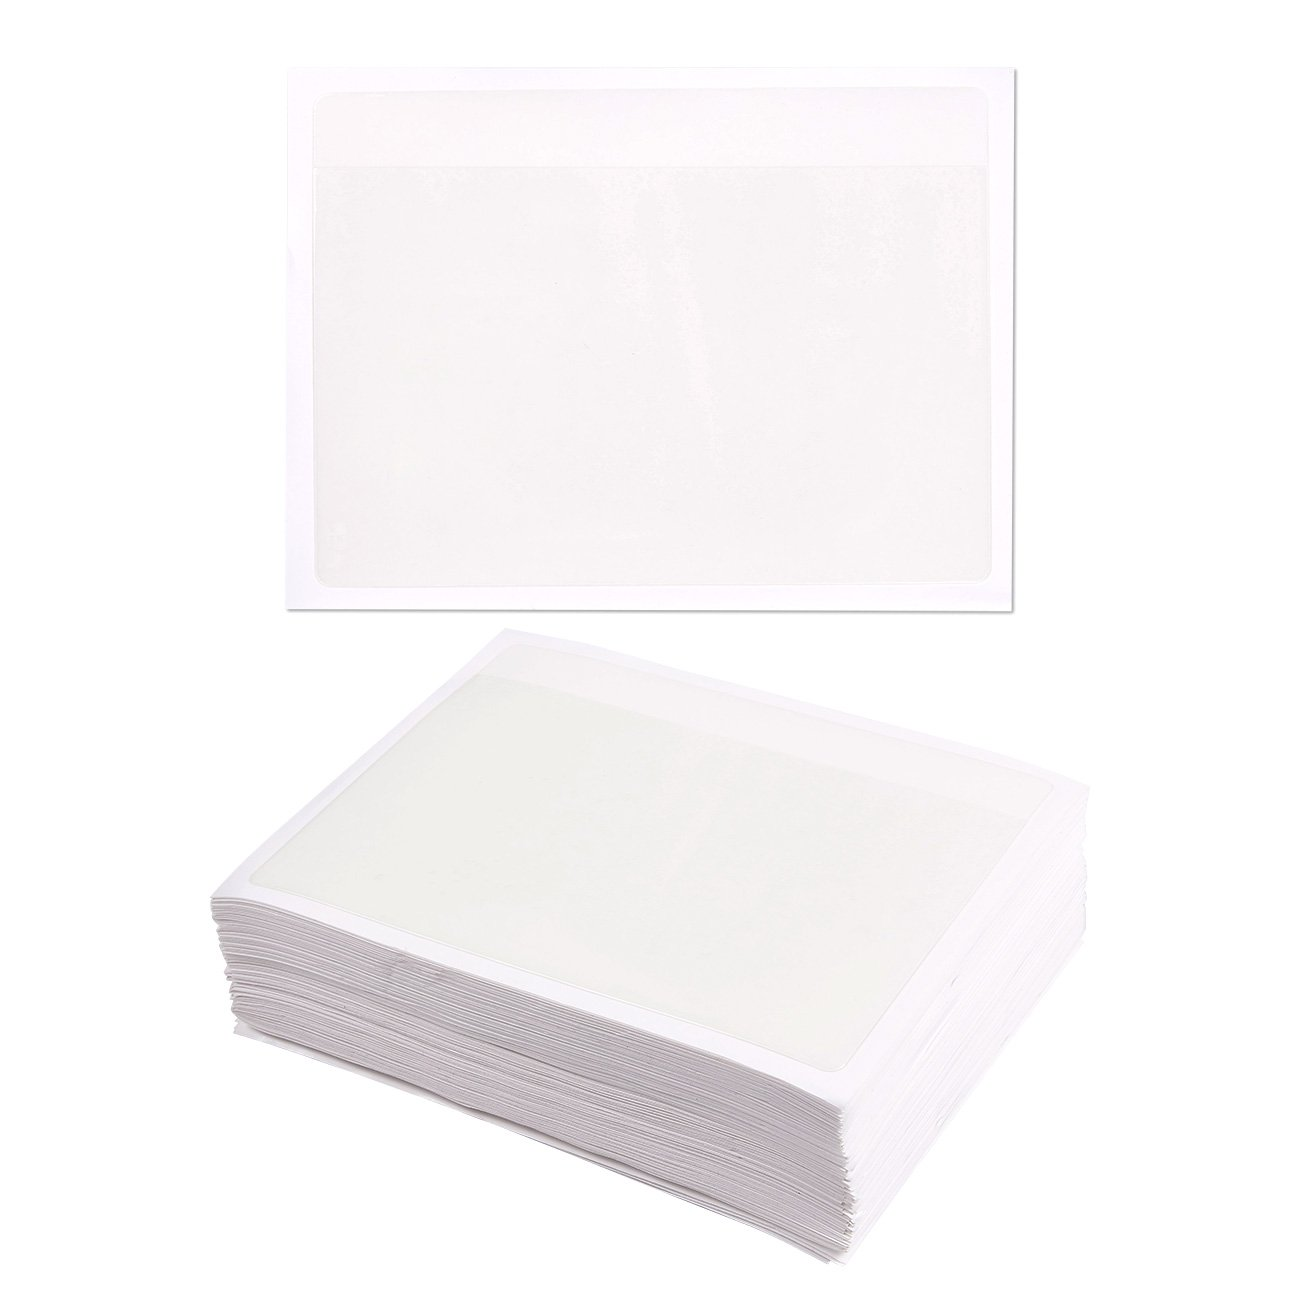 100-Pack Self-Adhesive Index Card Pockets with Open Sides - Ideal for Organizing and Protecting Your Index Cards - Crystal Clear Plastic, 4.6 x 6 Inches by Juvale